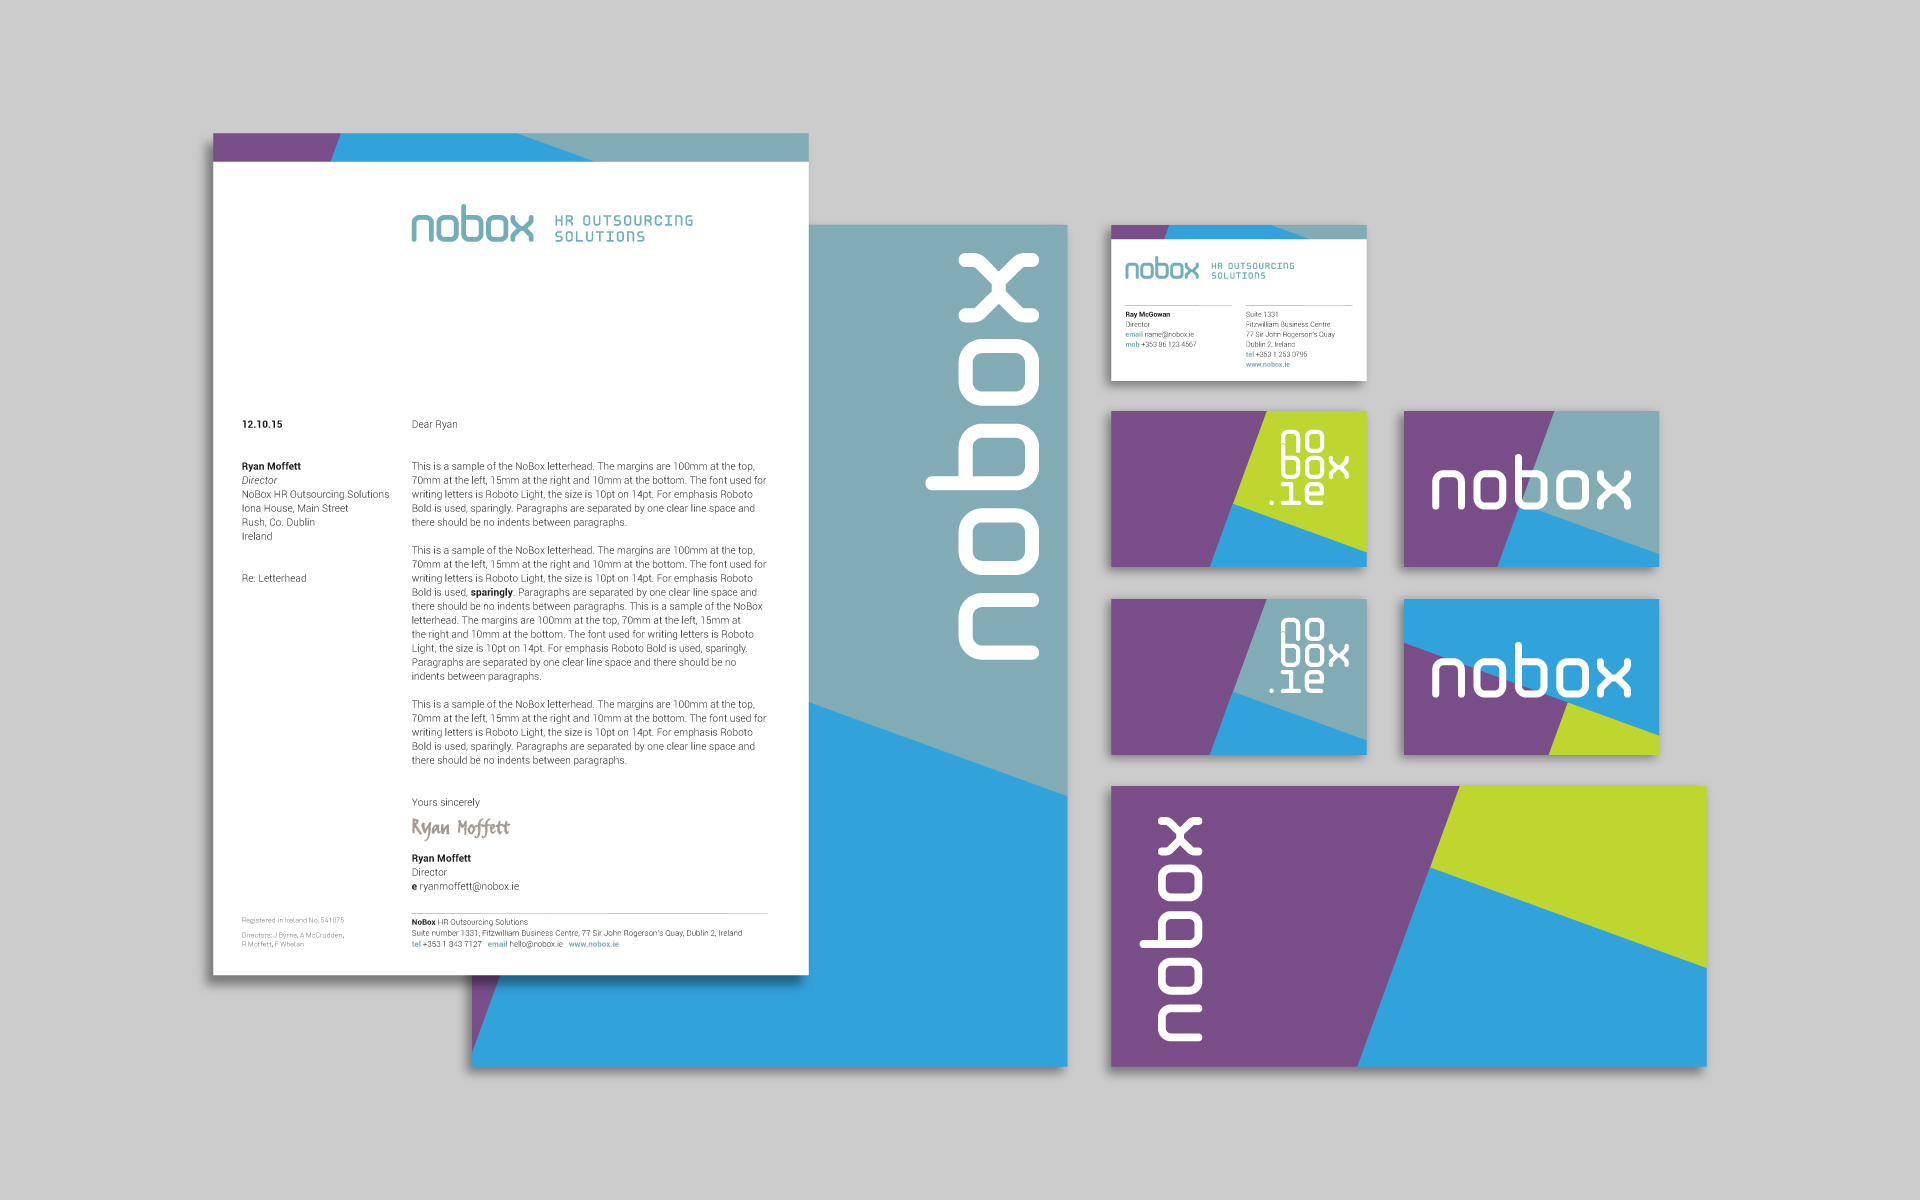 Nobox HR Outsourcing Solutions stationery system